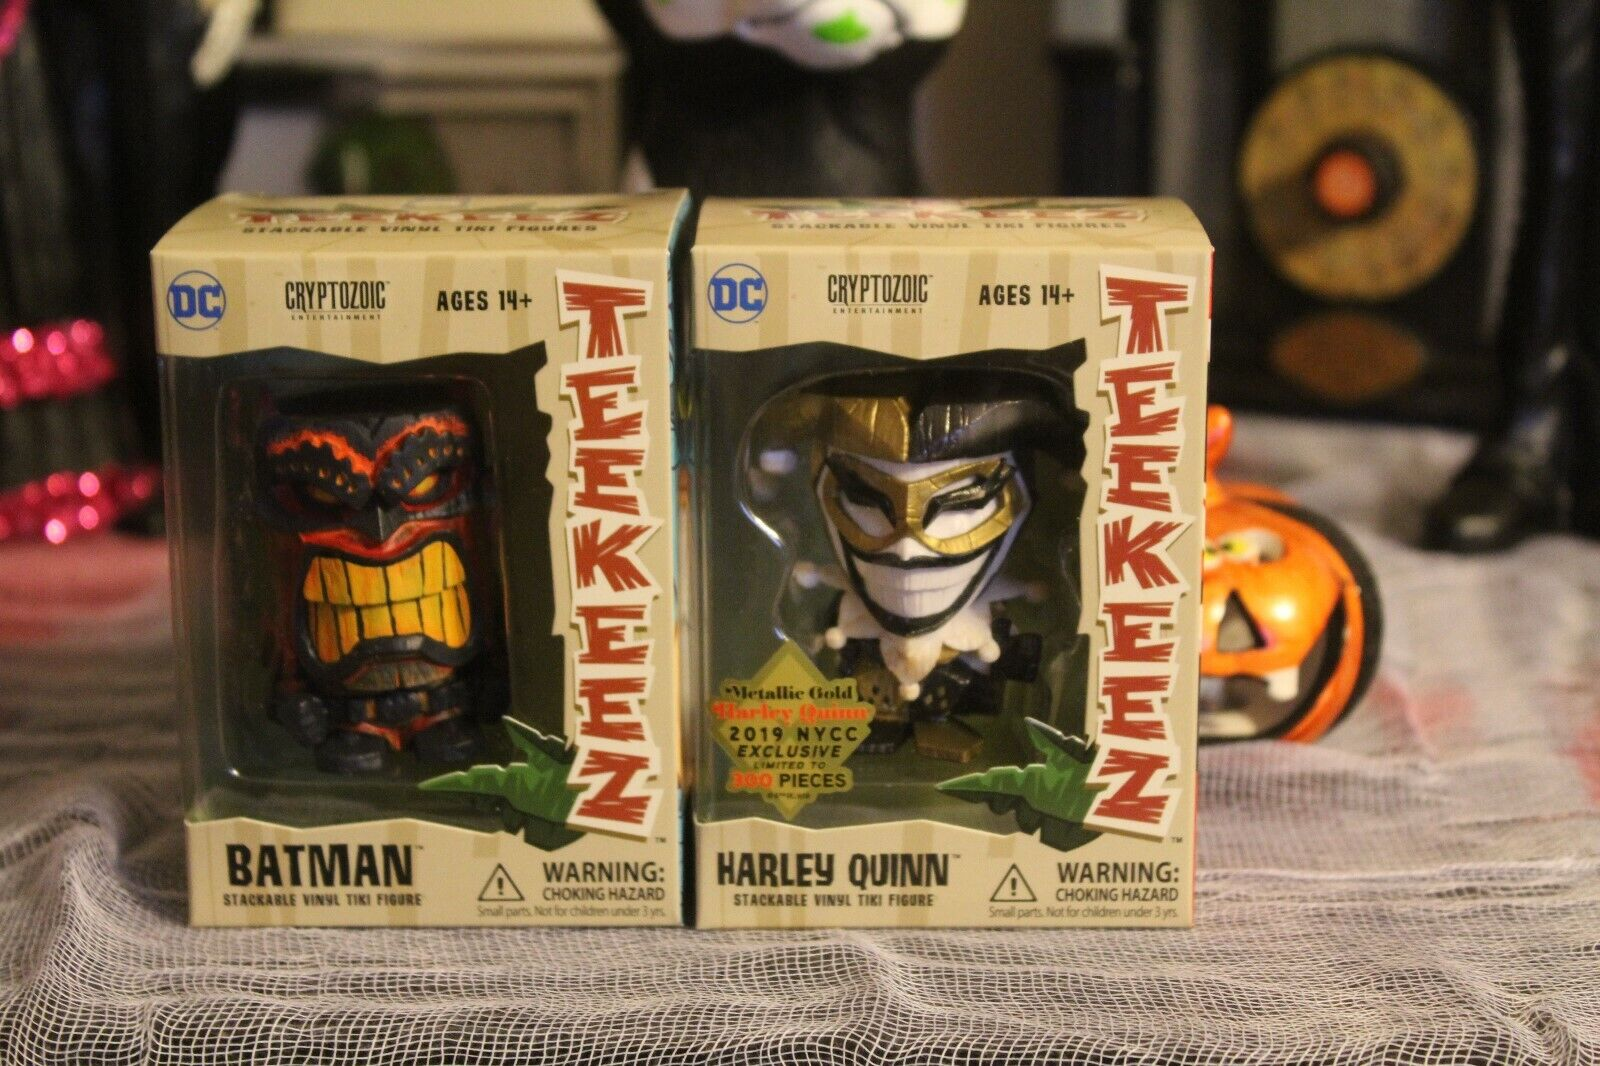 2019 NYCC Harley Quinn Metallic gold Teekeez Teekeez Cryptozoic and Batman Chase